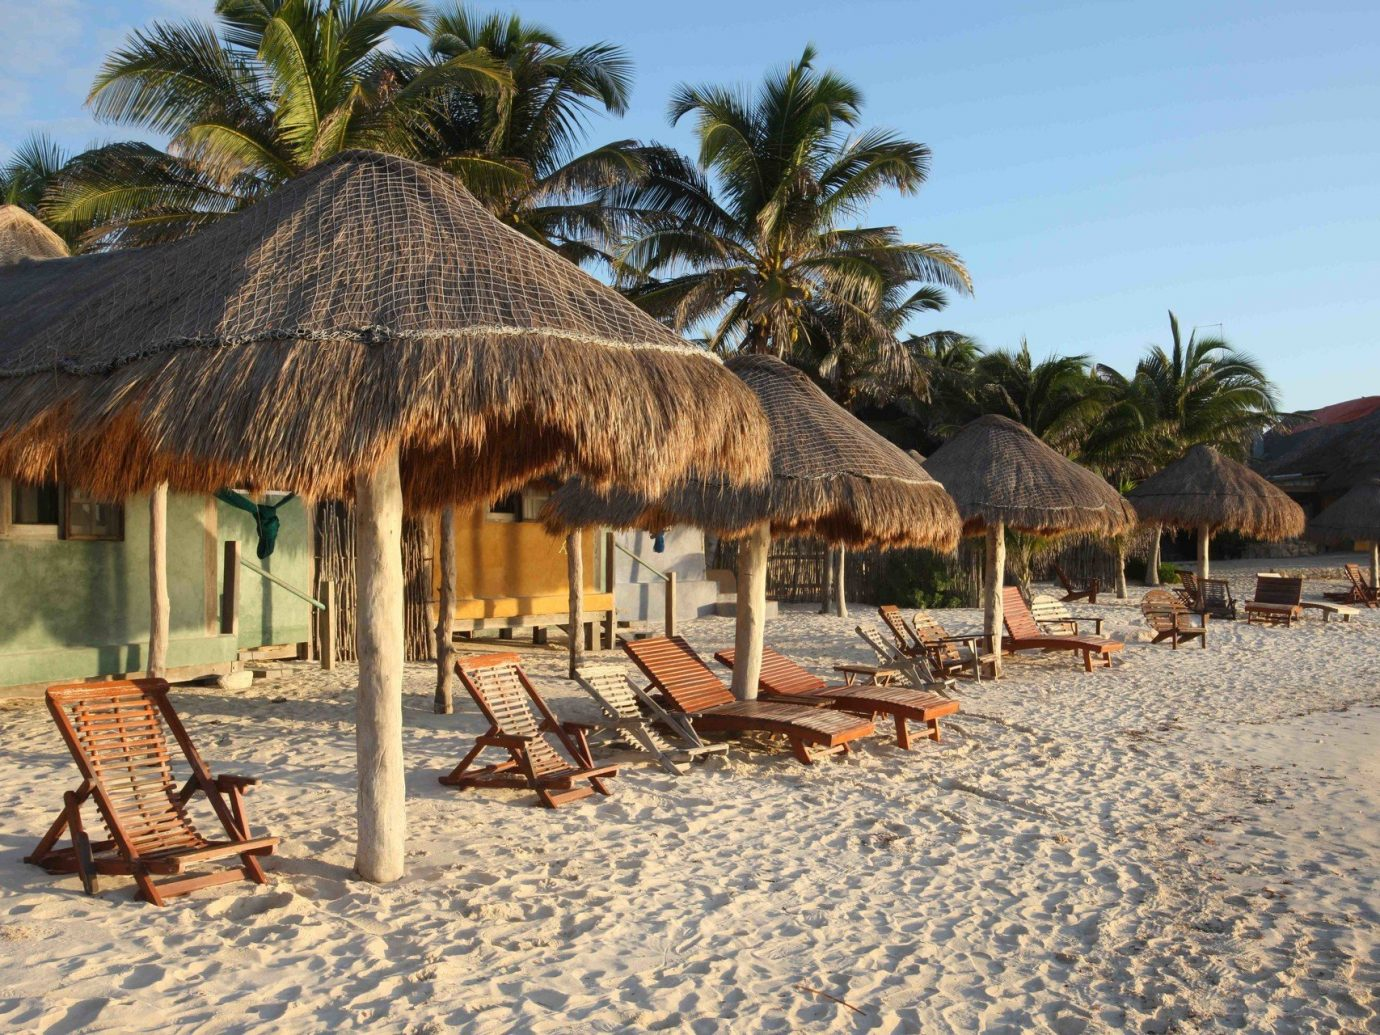 sandy beach and wooden lounge chairs in Tulum